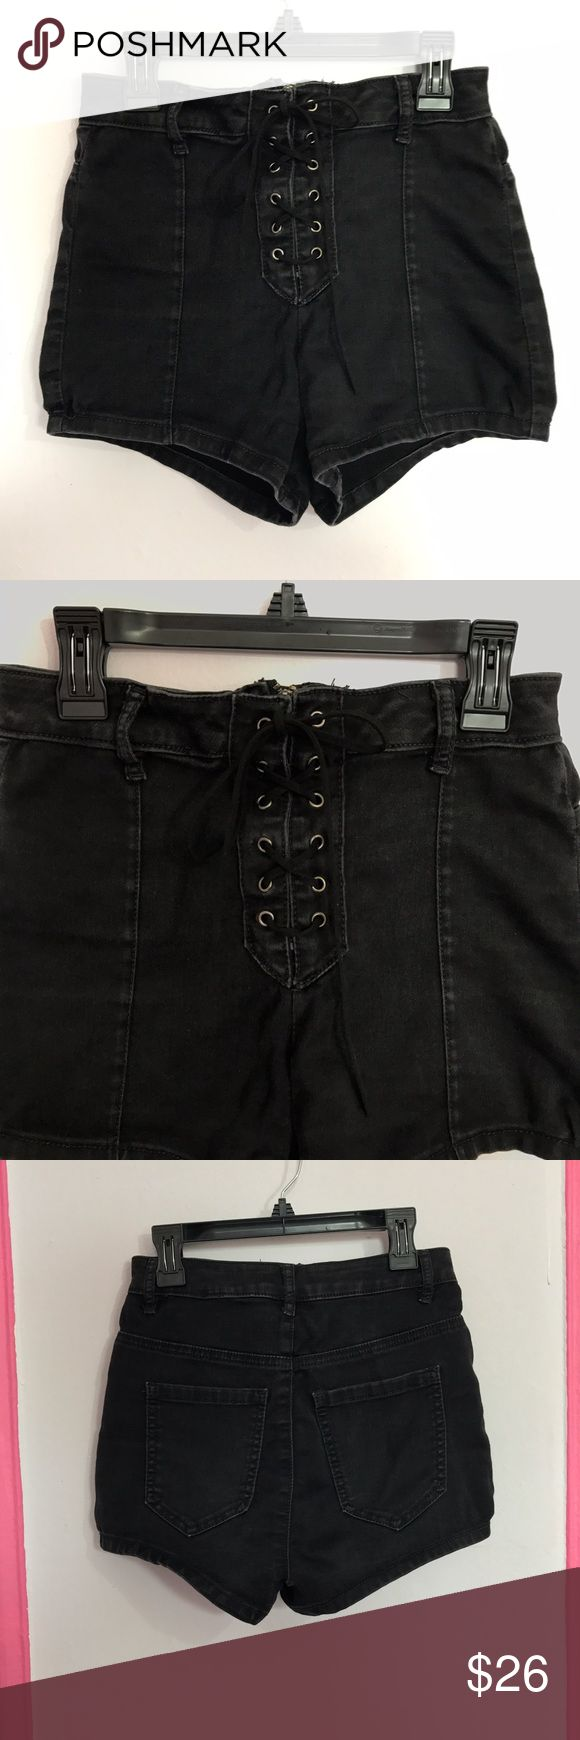 Black Lace Up Hot Shorts high waisted rocker boho Black stretch denim lace up shorts. In great preloved condition, with a little wear and some slight puckering in fabric on front, but flaws are unnoticeable & look vintage style. Faux suede Drawcord loops through silver grommets on front. Hidden zip up behind lace up detail. Size Small from Forever 21, I think it best fits a size 25 or 26. Perfect music festivals and rock concerts.  I accept reasonable offers  Bundle 2 + items to save 15% off…